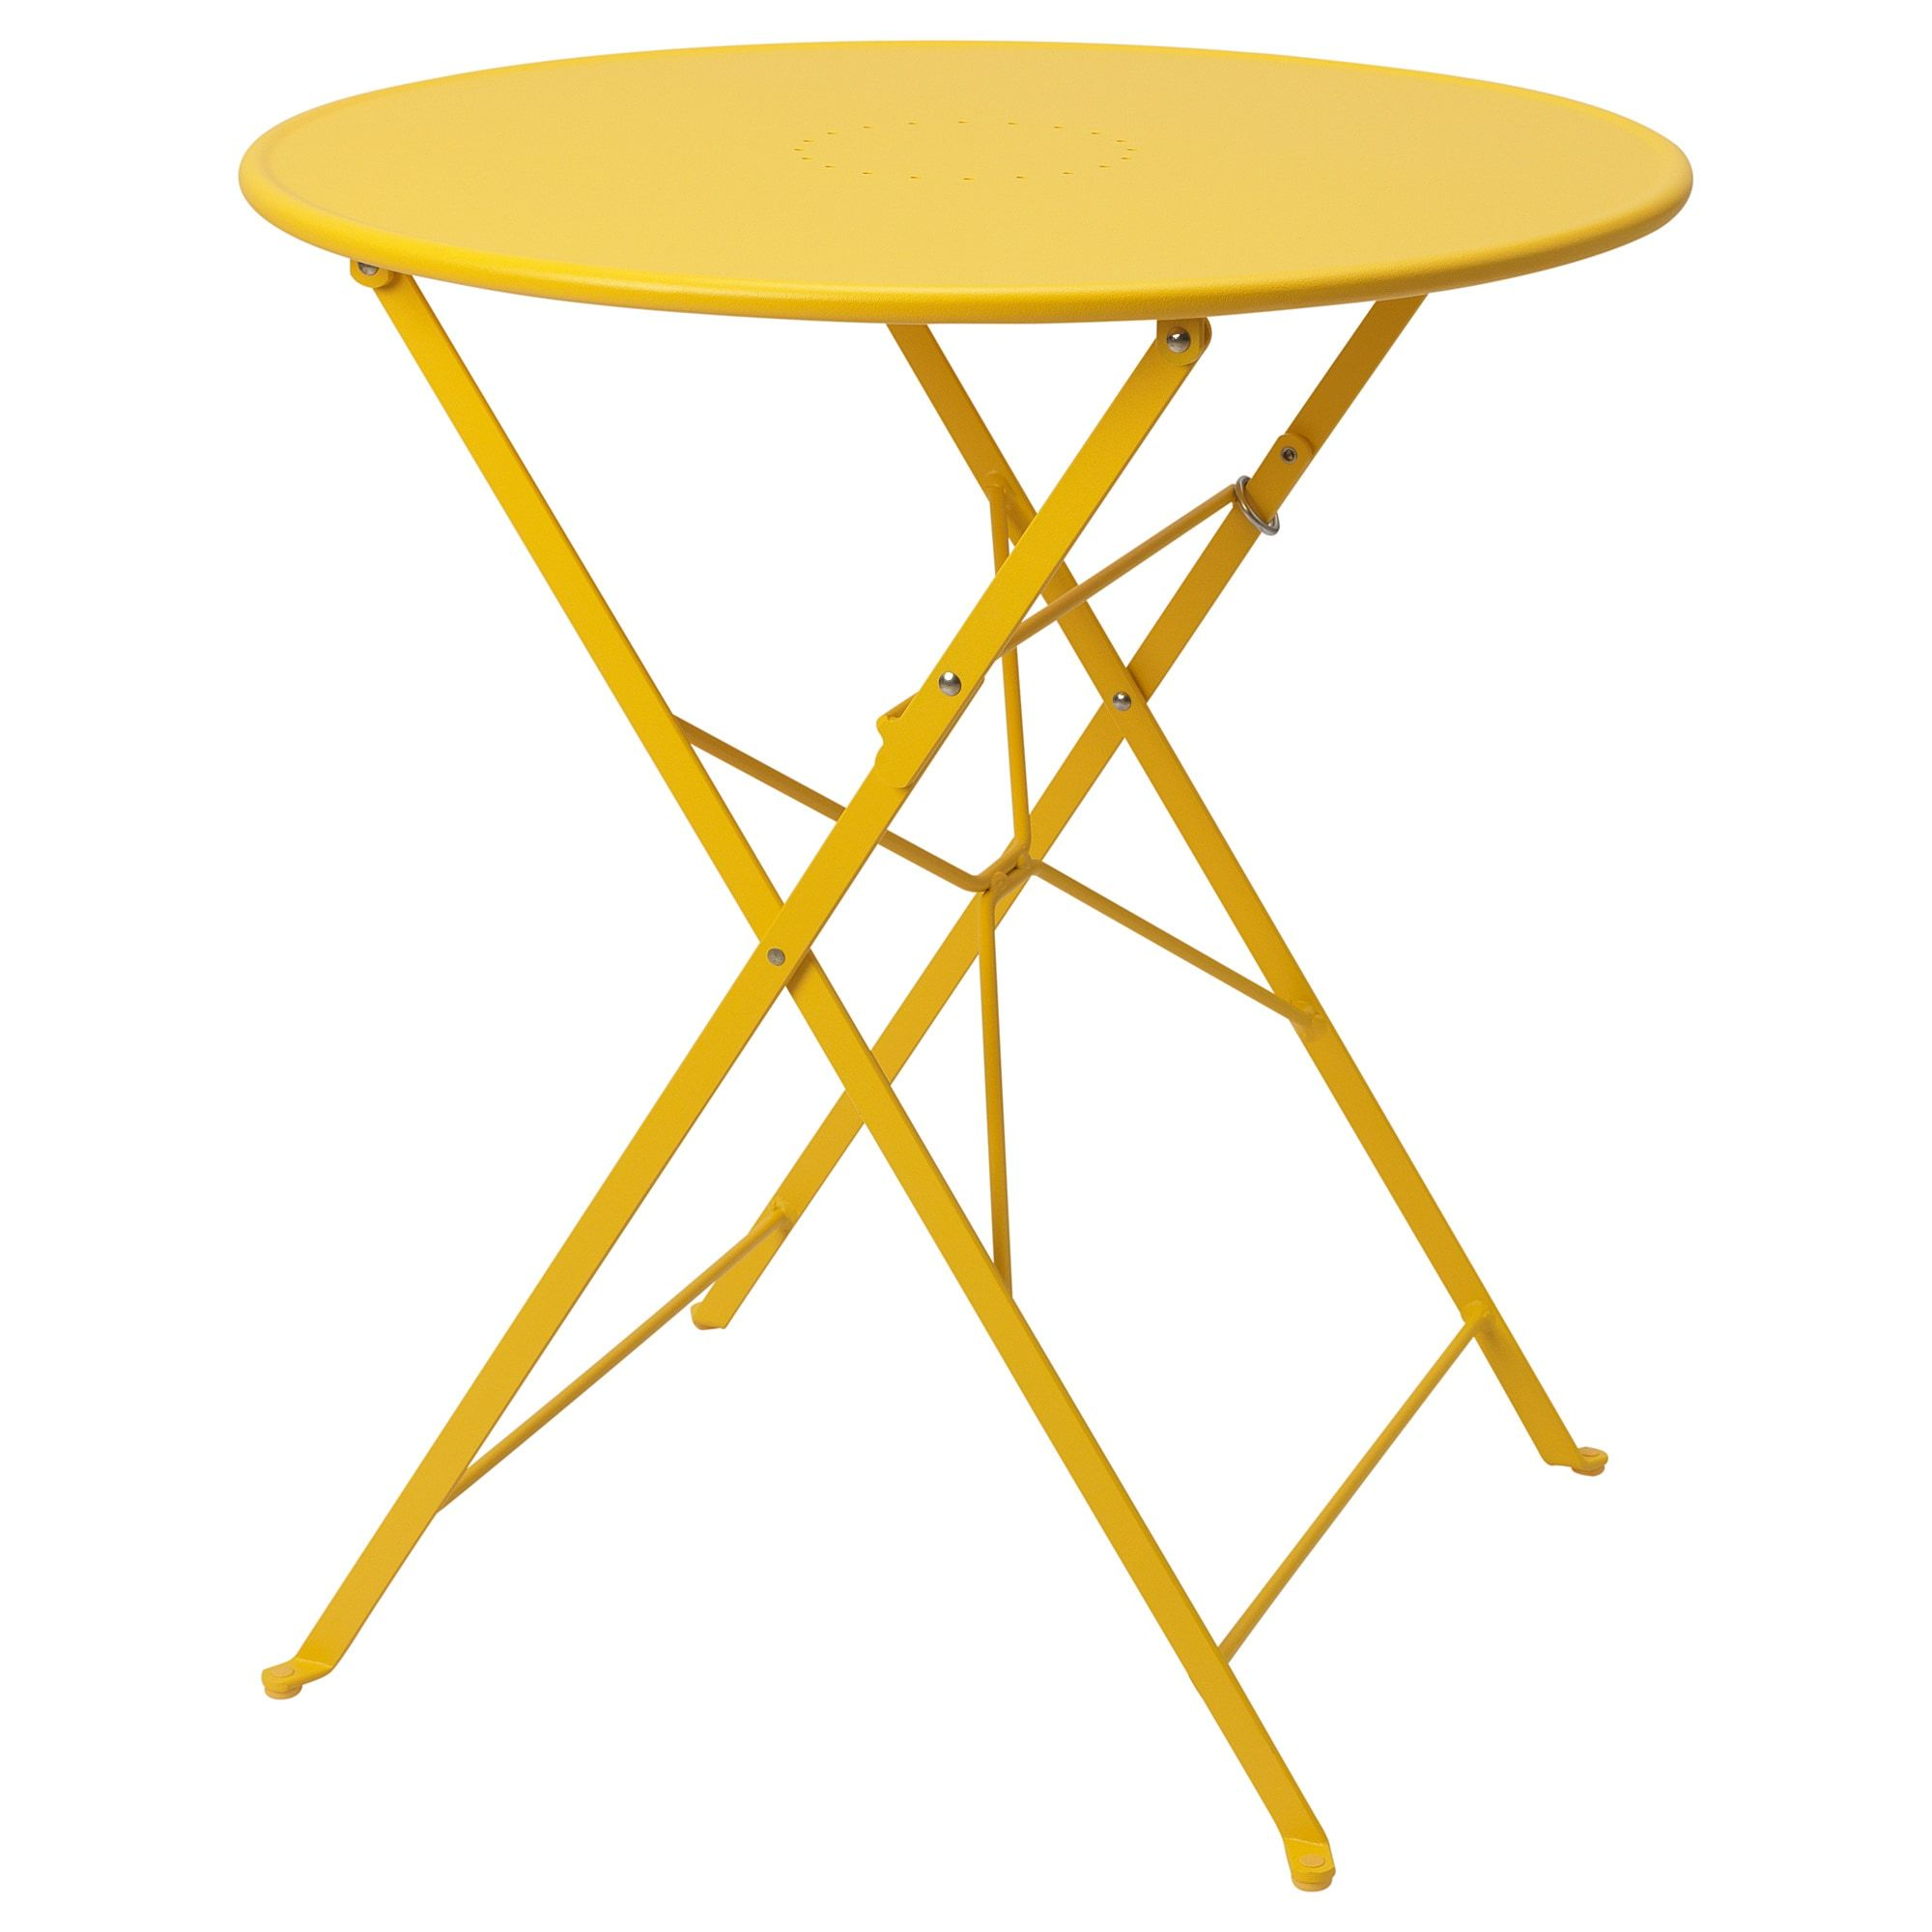 Table Outdoor Saltholmen Foldable Yellow Garden Table Outdoor Outdoor Tables